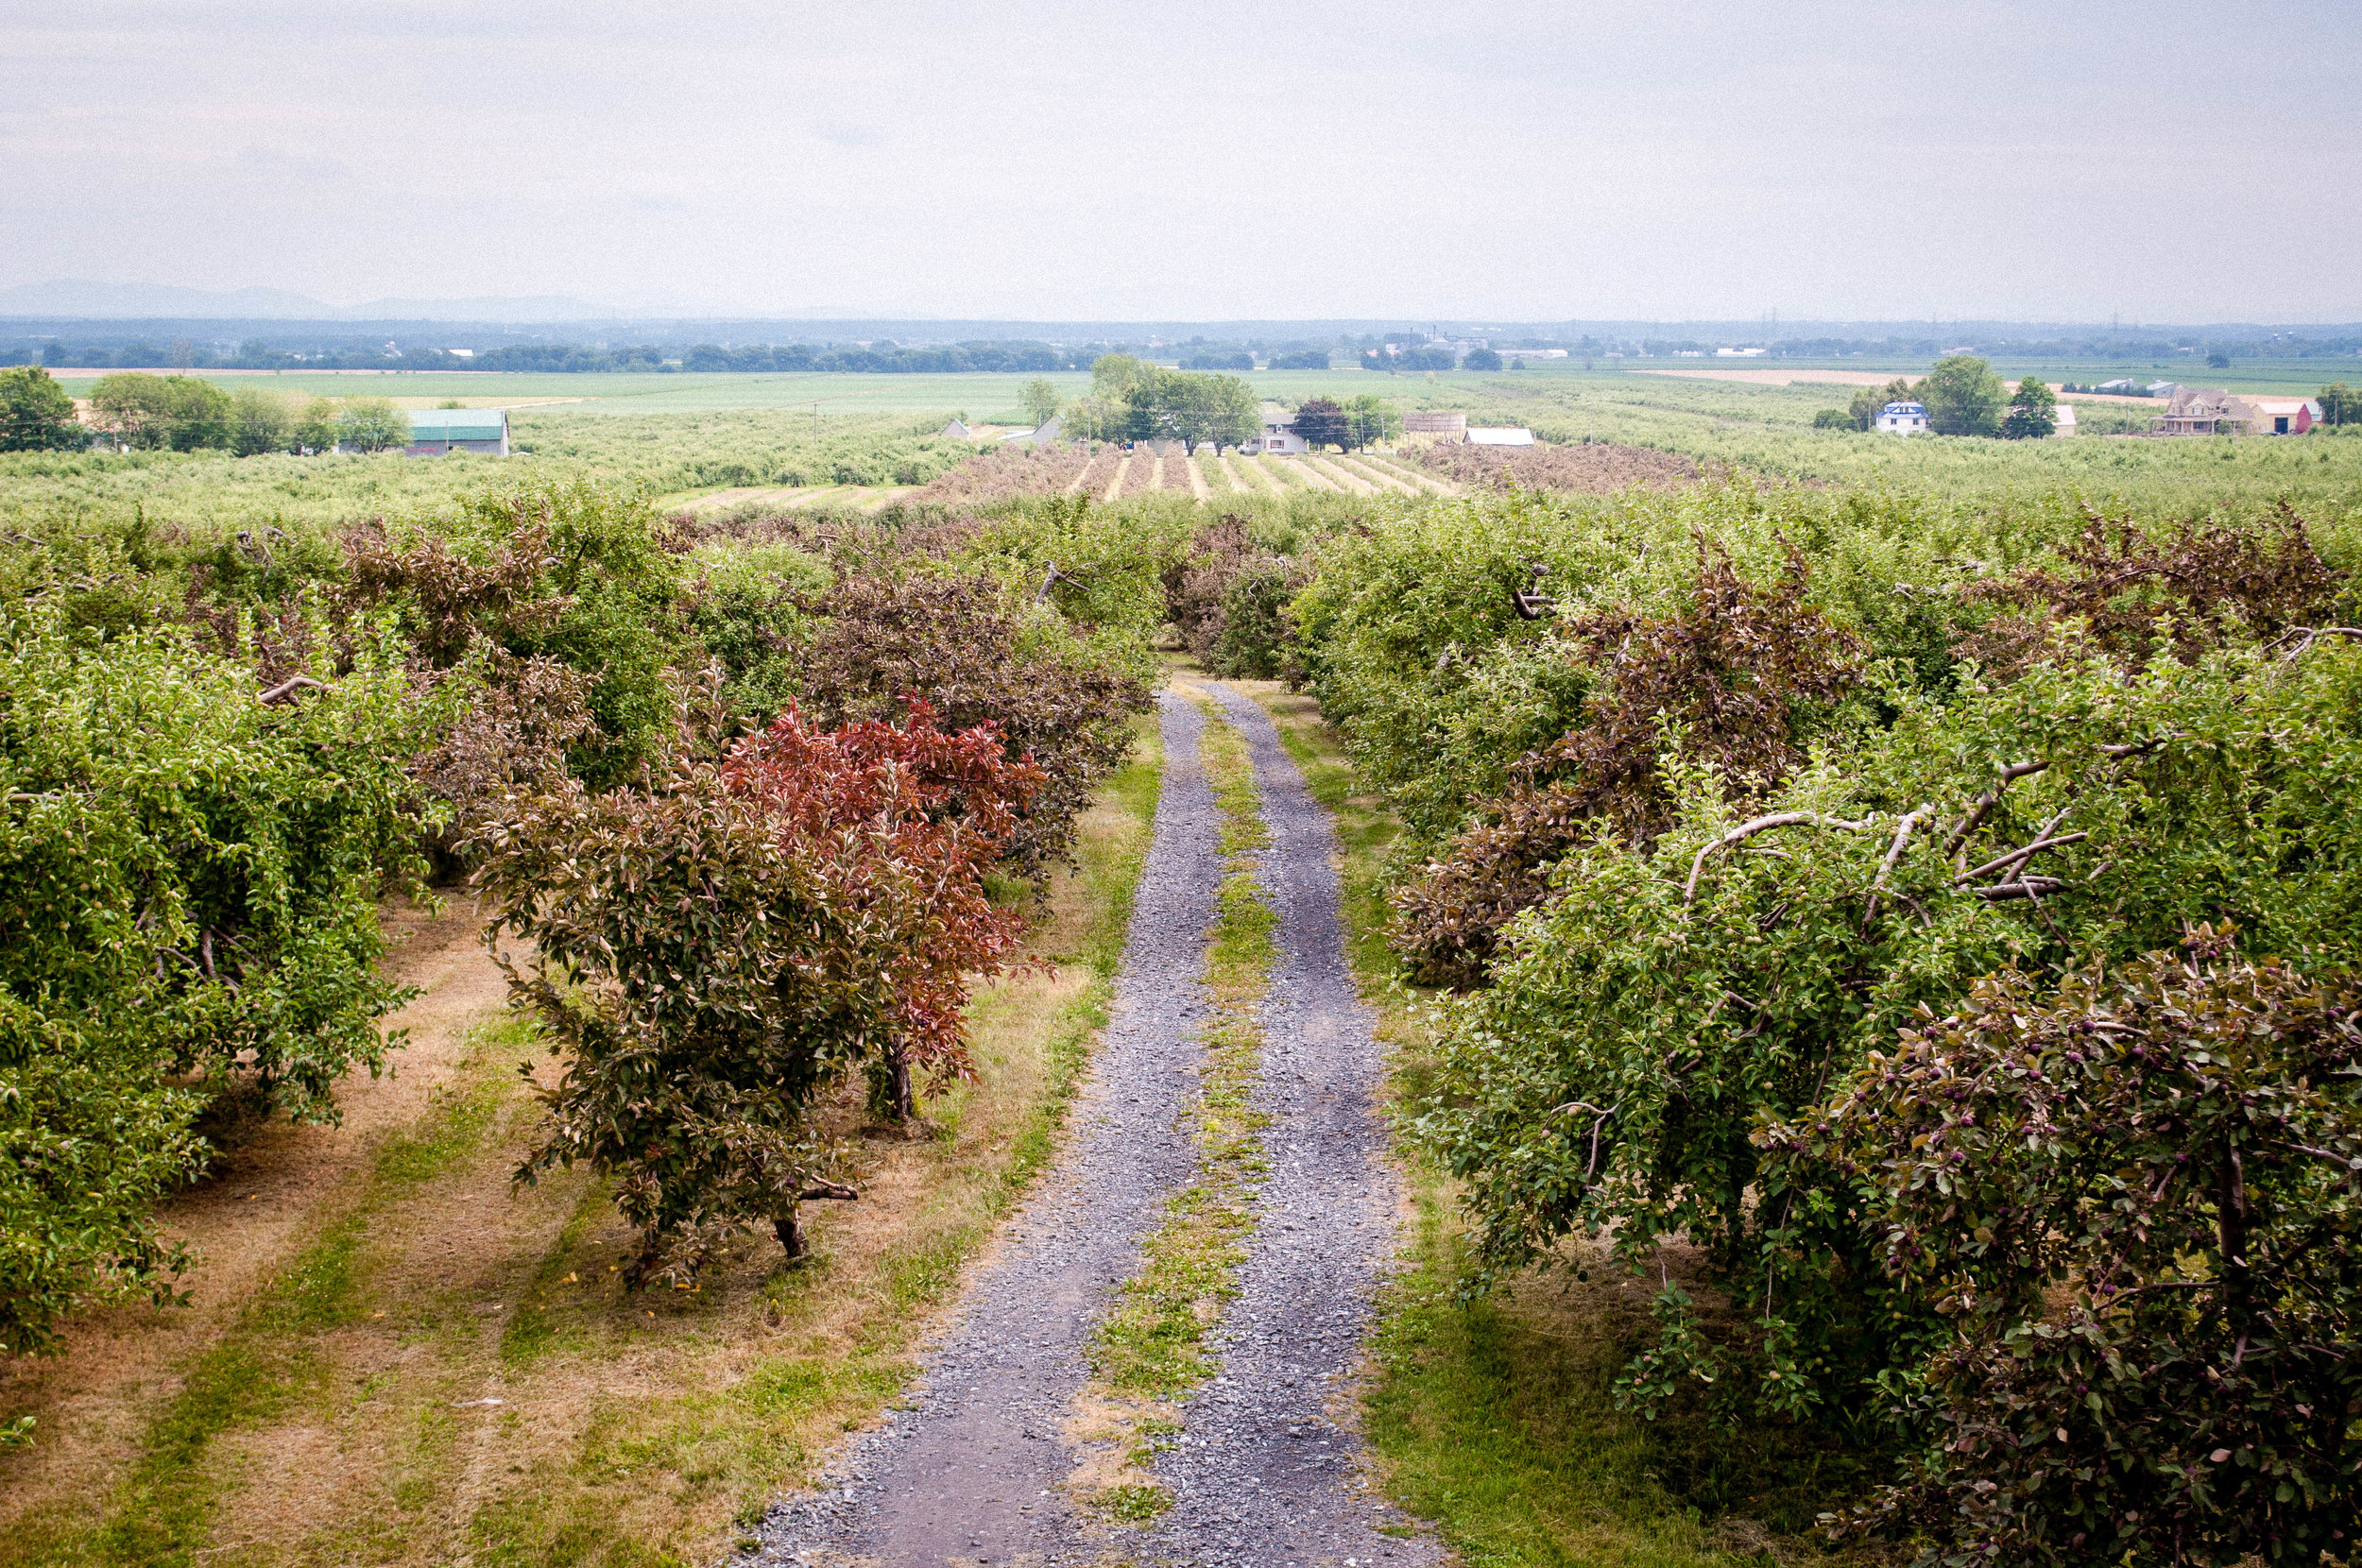 Different types of apple trees at Michel Jodoin